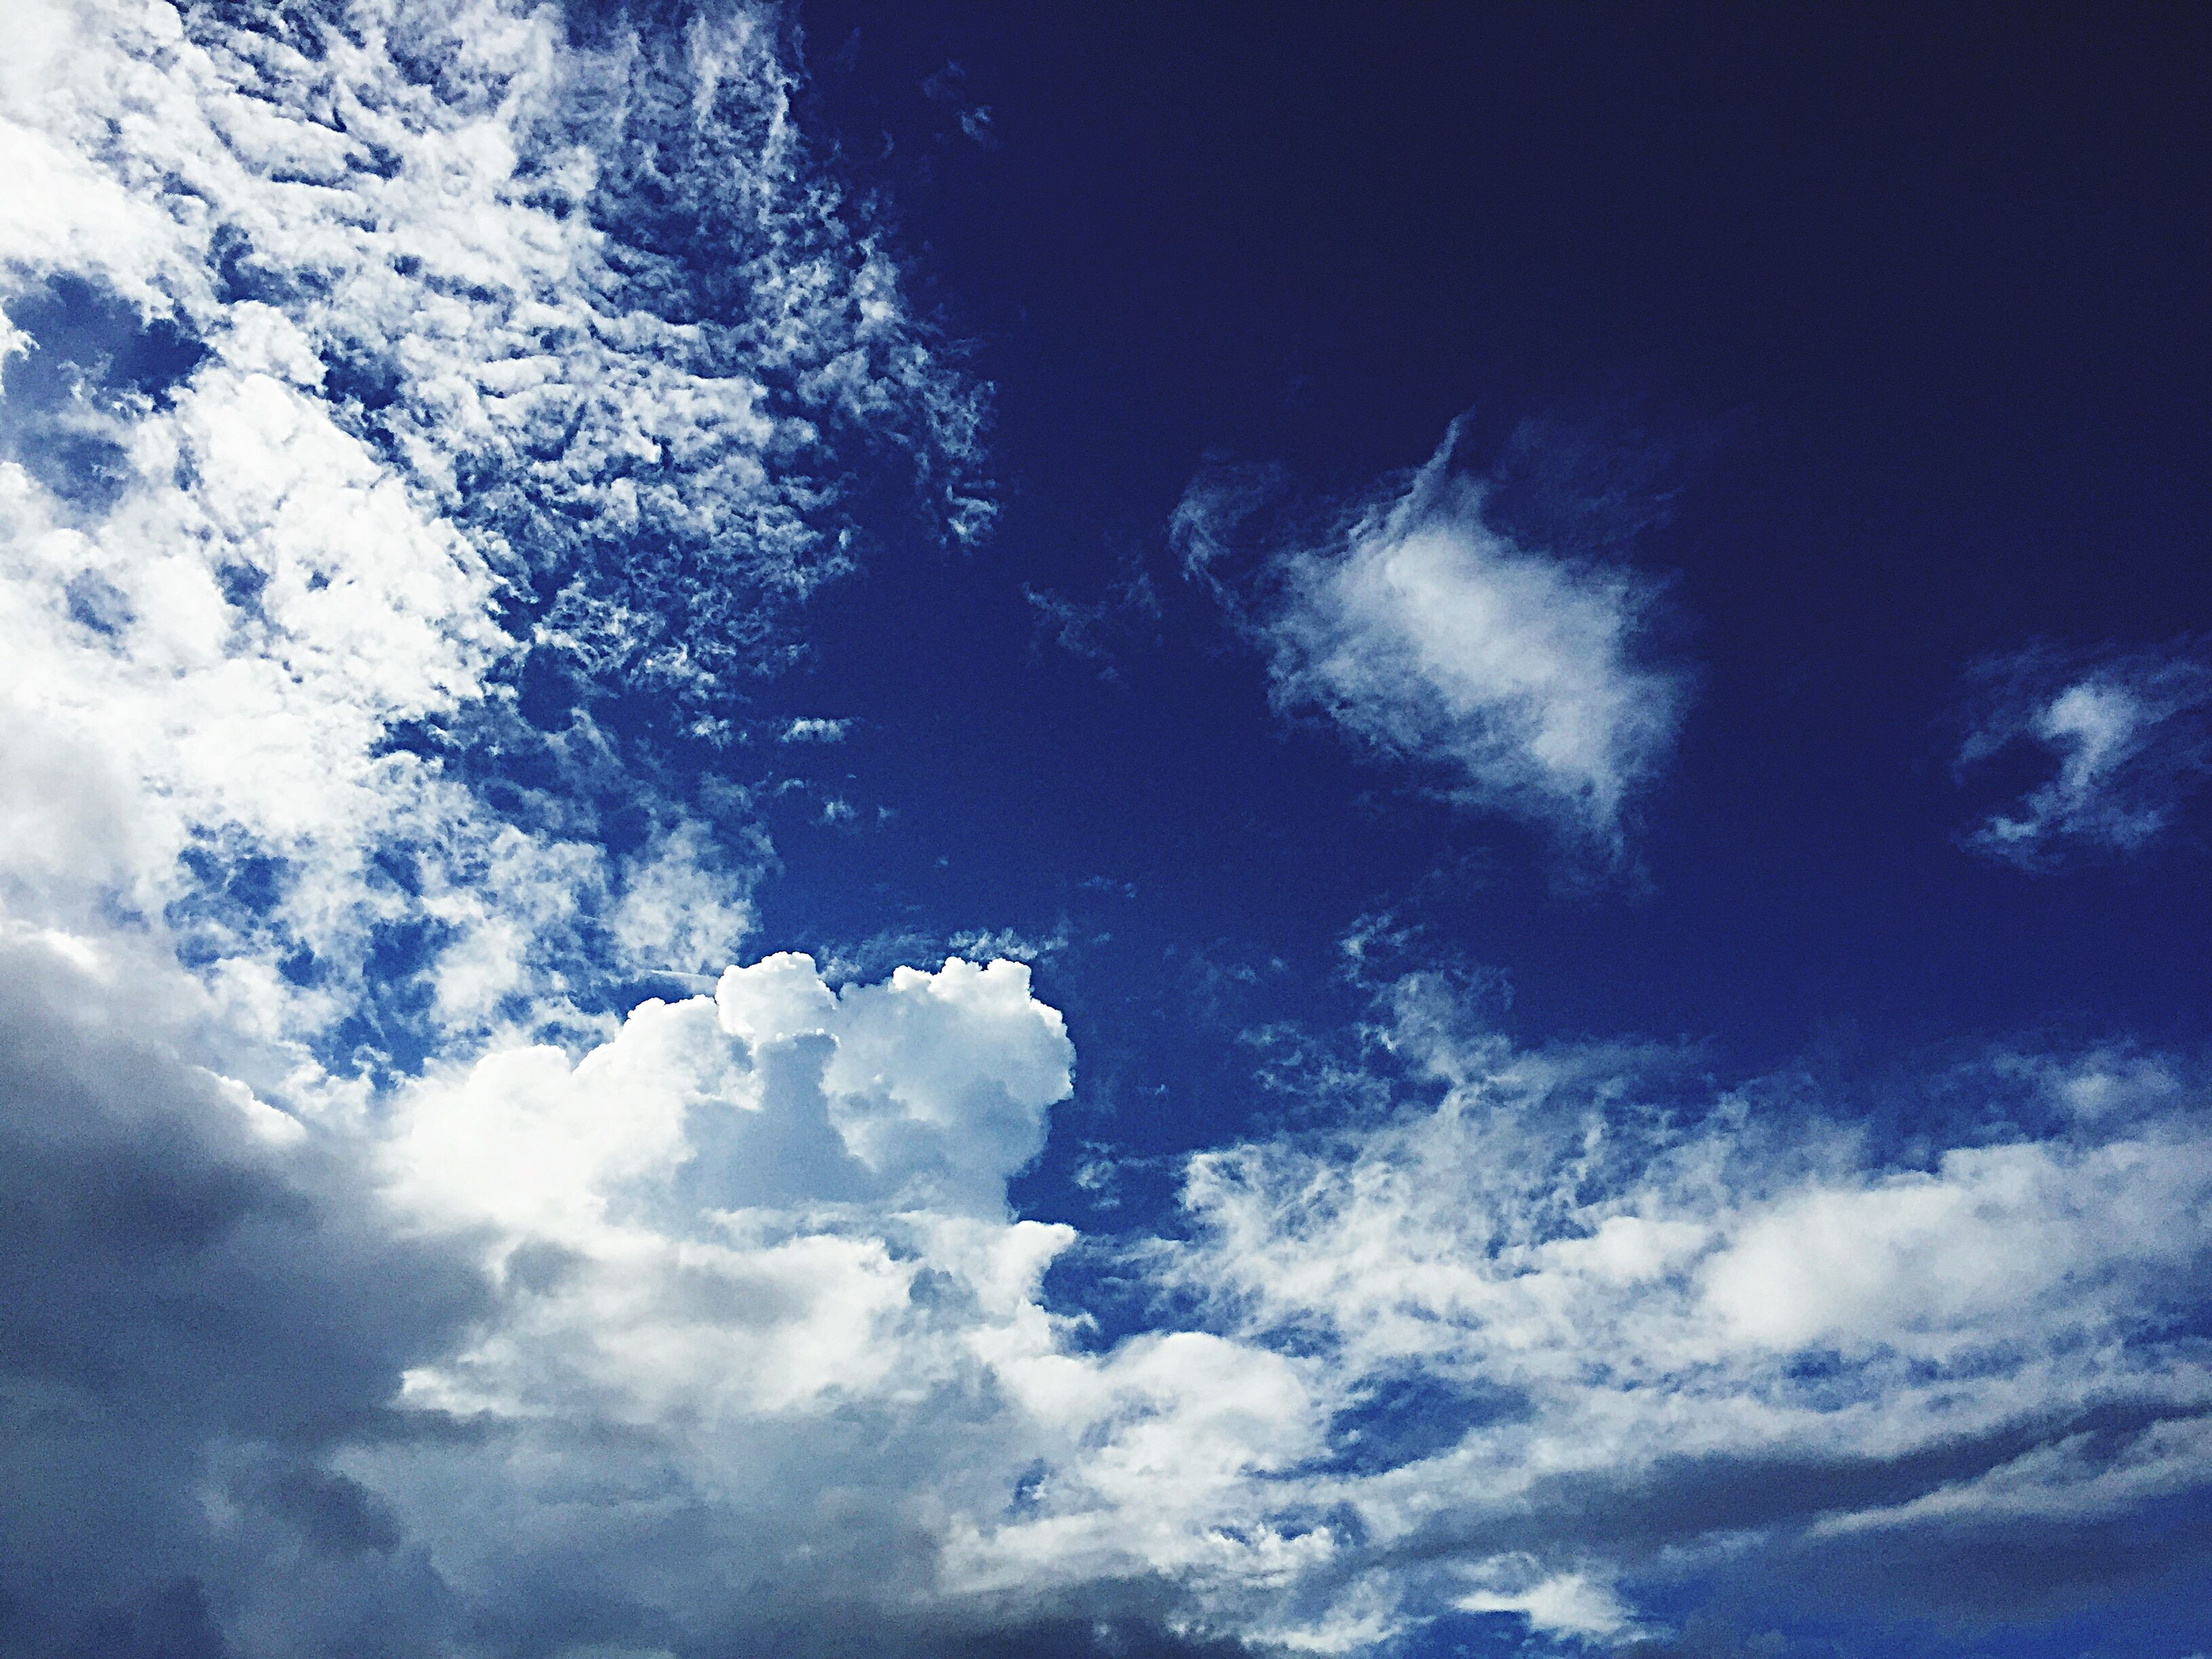 low angle view, sky, tranquility, beauty in nature, cloud - sky, sky only, scenics, nature, tranquil scene, backgrounds, blue, full frame, idyllic, cloudy, cloudscape, outdoors, majestic, no people, cloud, weather, day, white